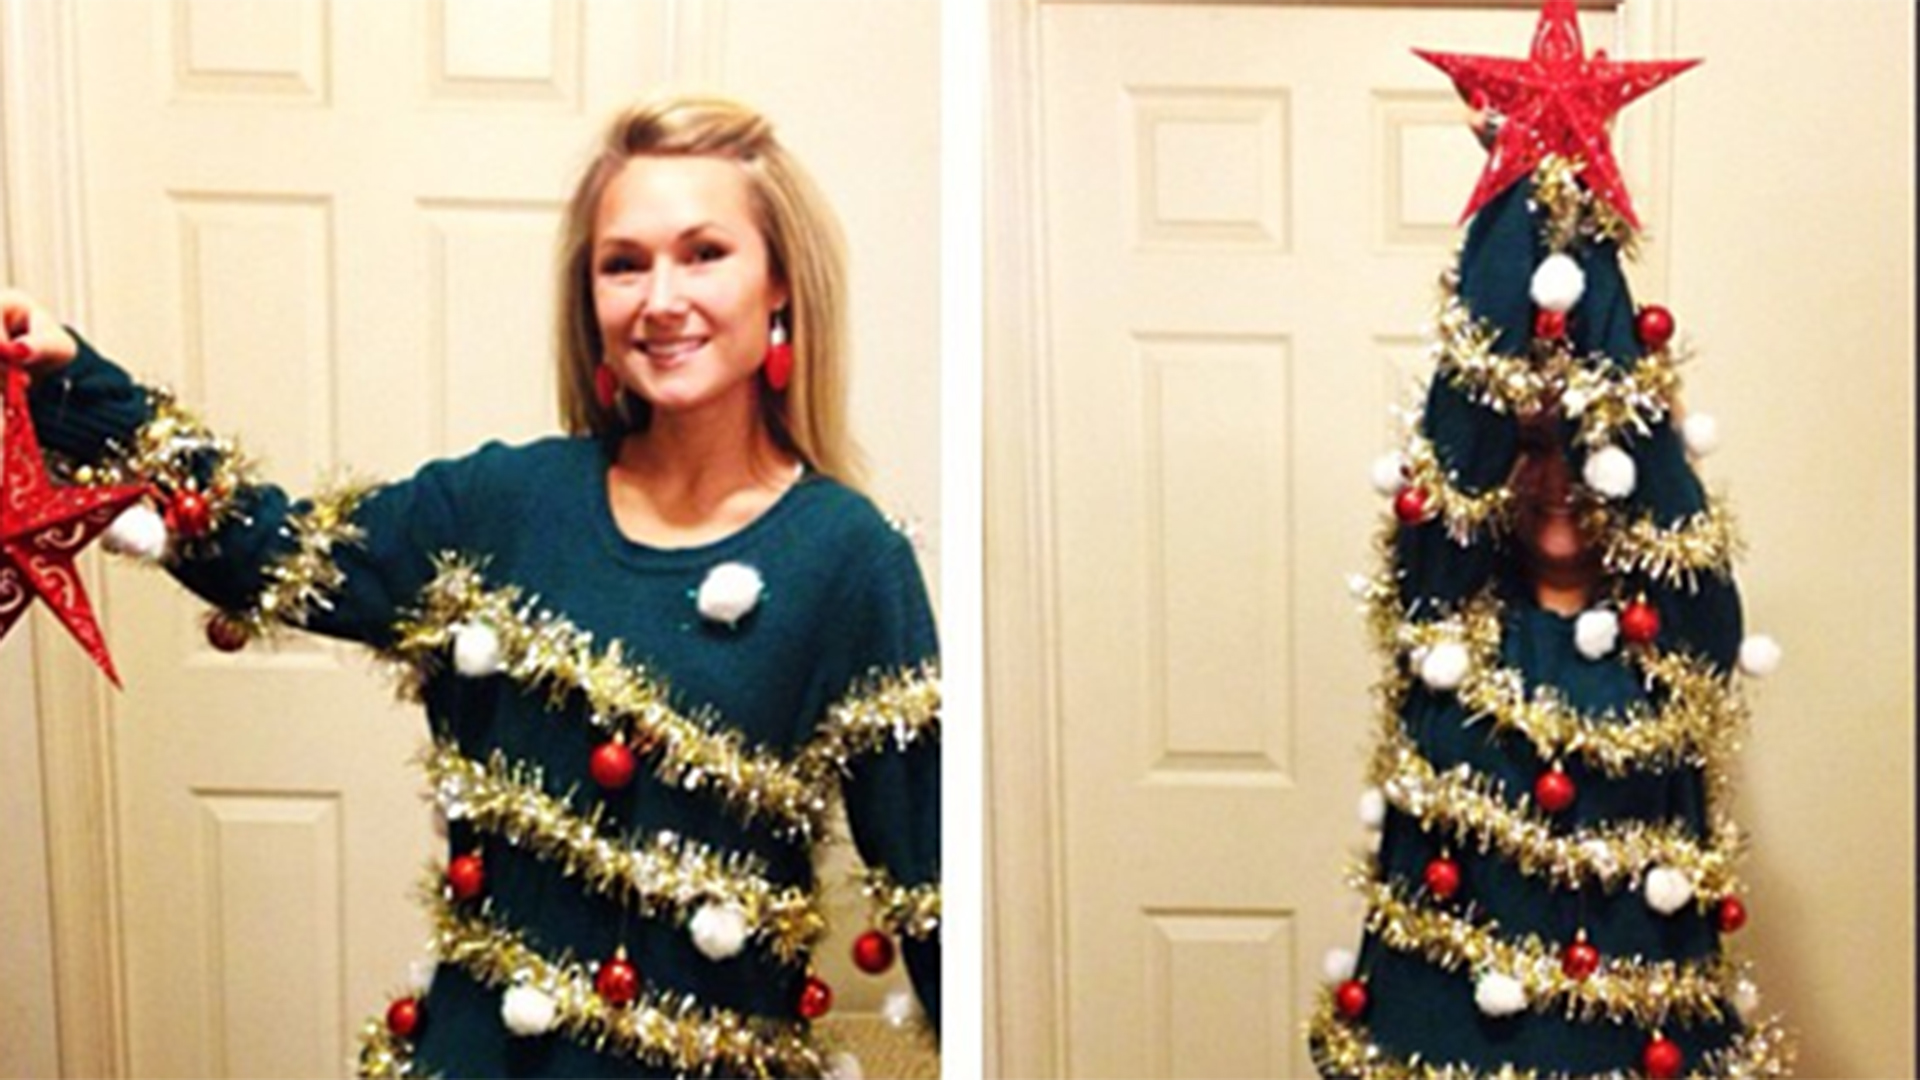 7 diy ugly christmas sweaters from pinterest - How To Decorate A Ugly Christmas Sweater